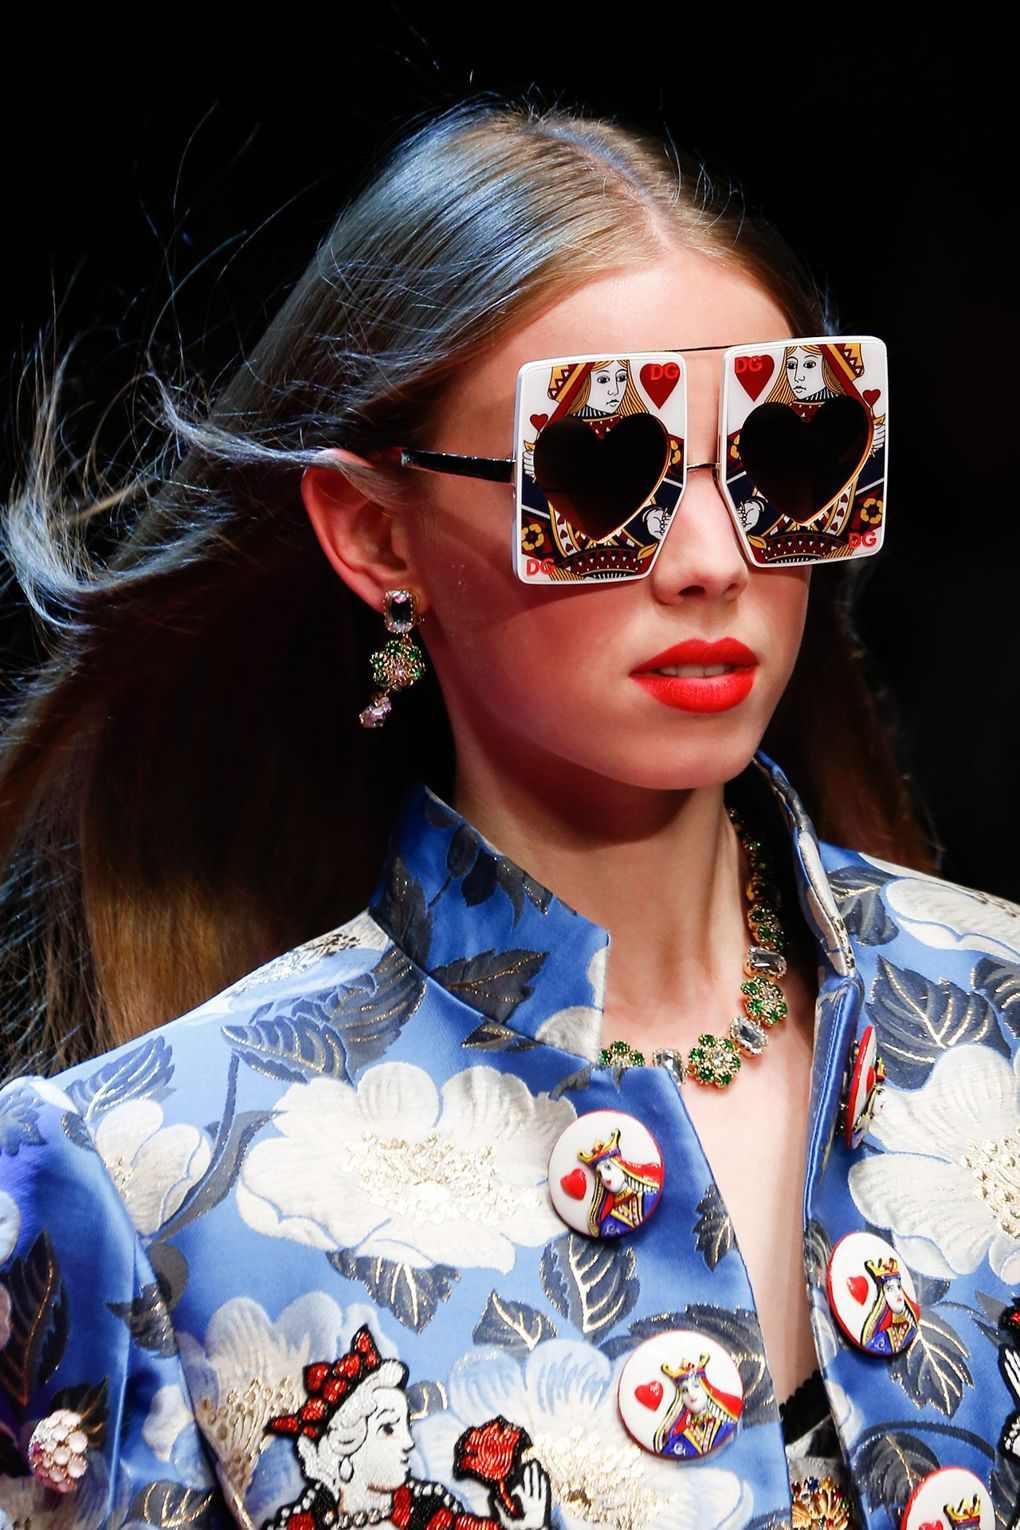 10 totally extra sunglasses at the dolce & gabbana show this